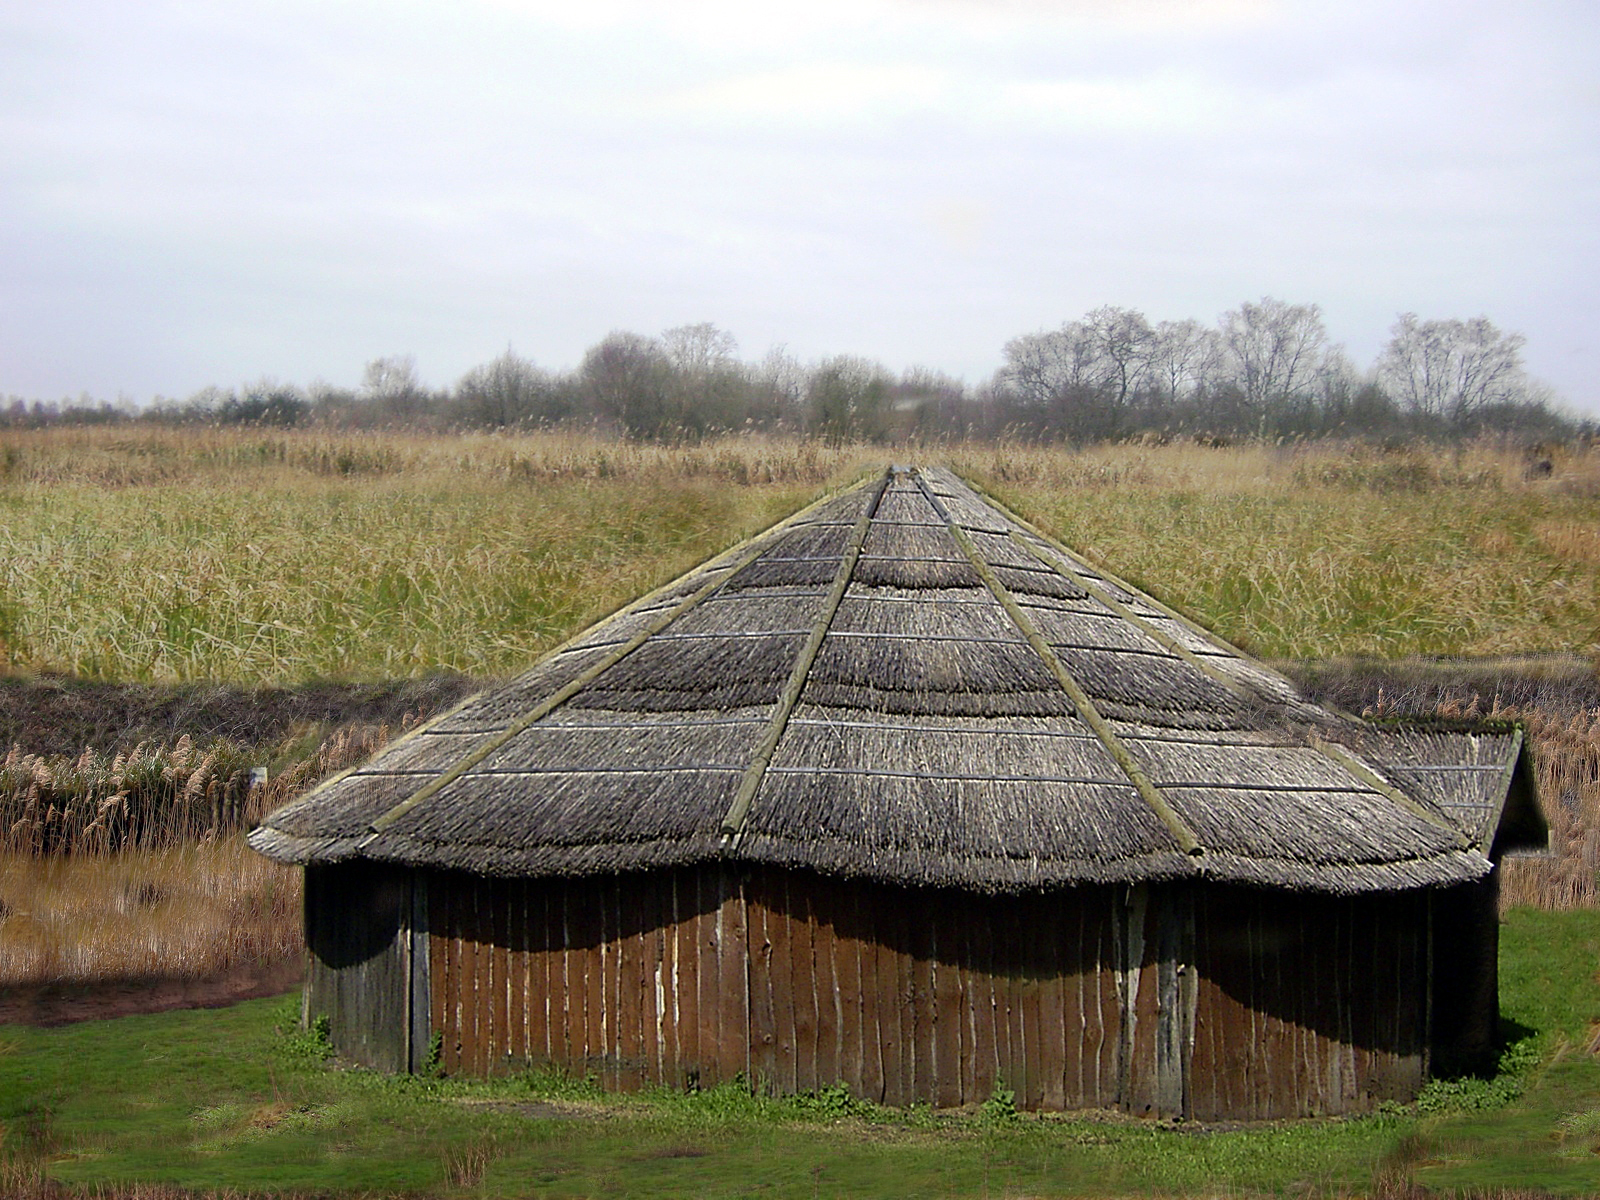 What a celtic dwelling in the fens may have looked like